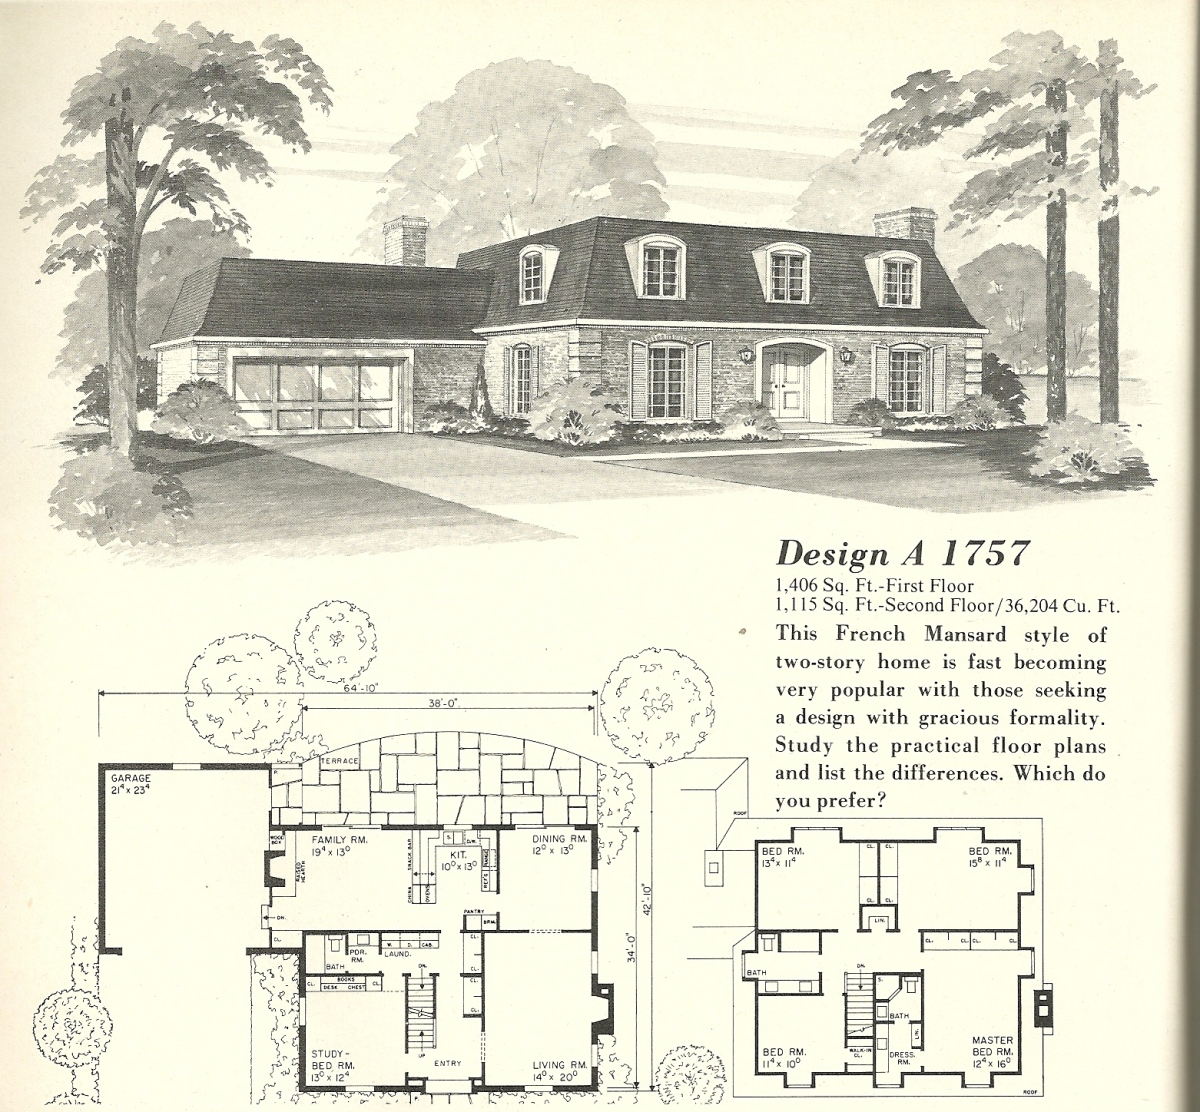 Vintage house plans french mansards 5 antique alter ego for Vintage home plans